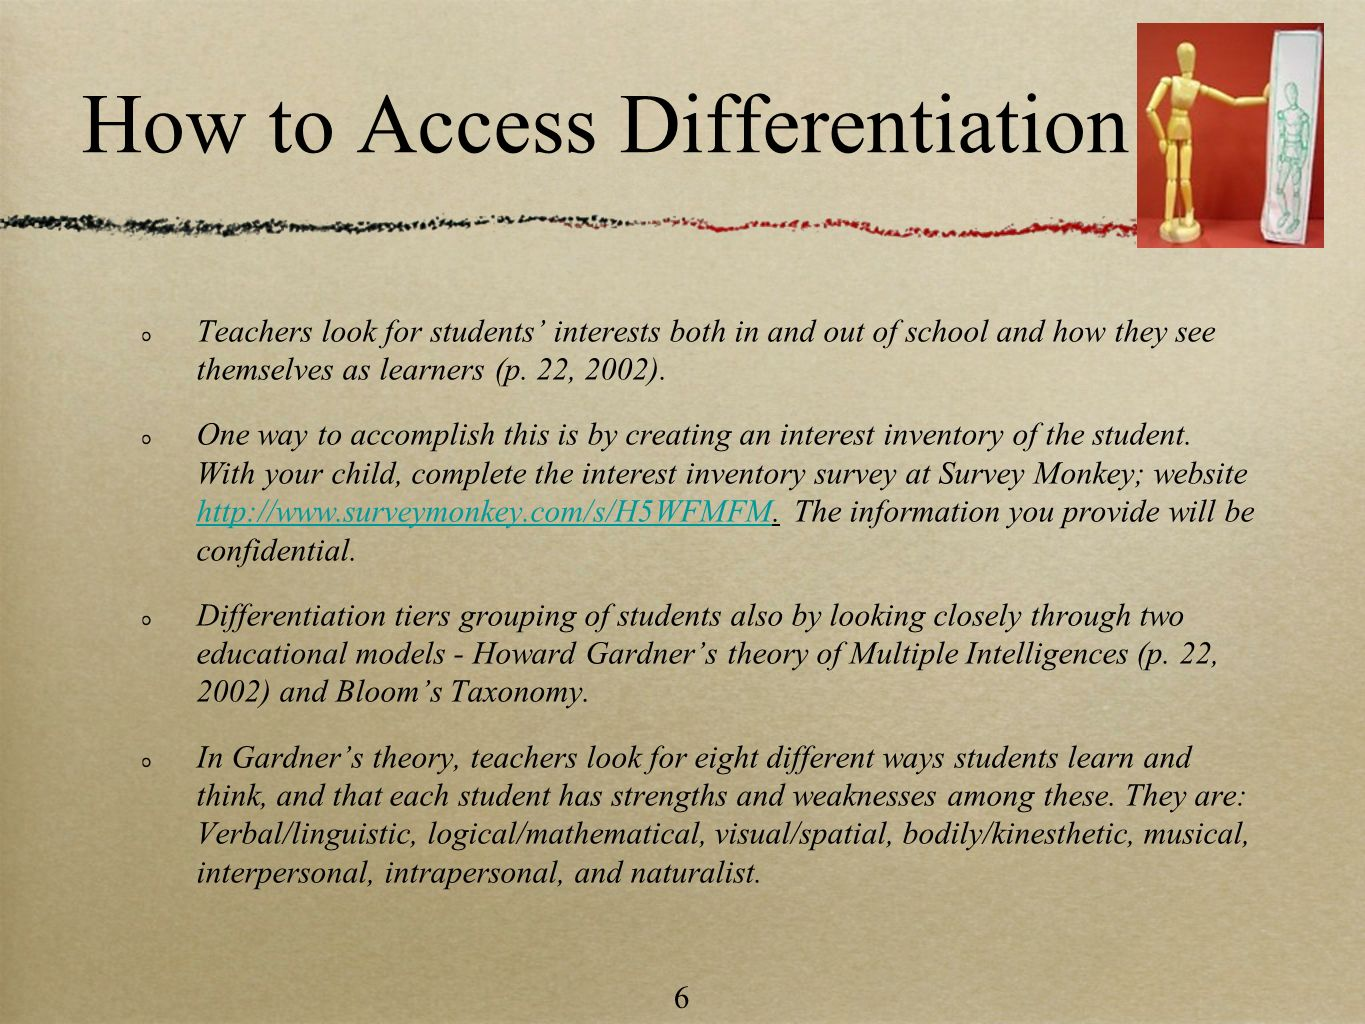 How to Access Differentiation